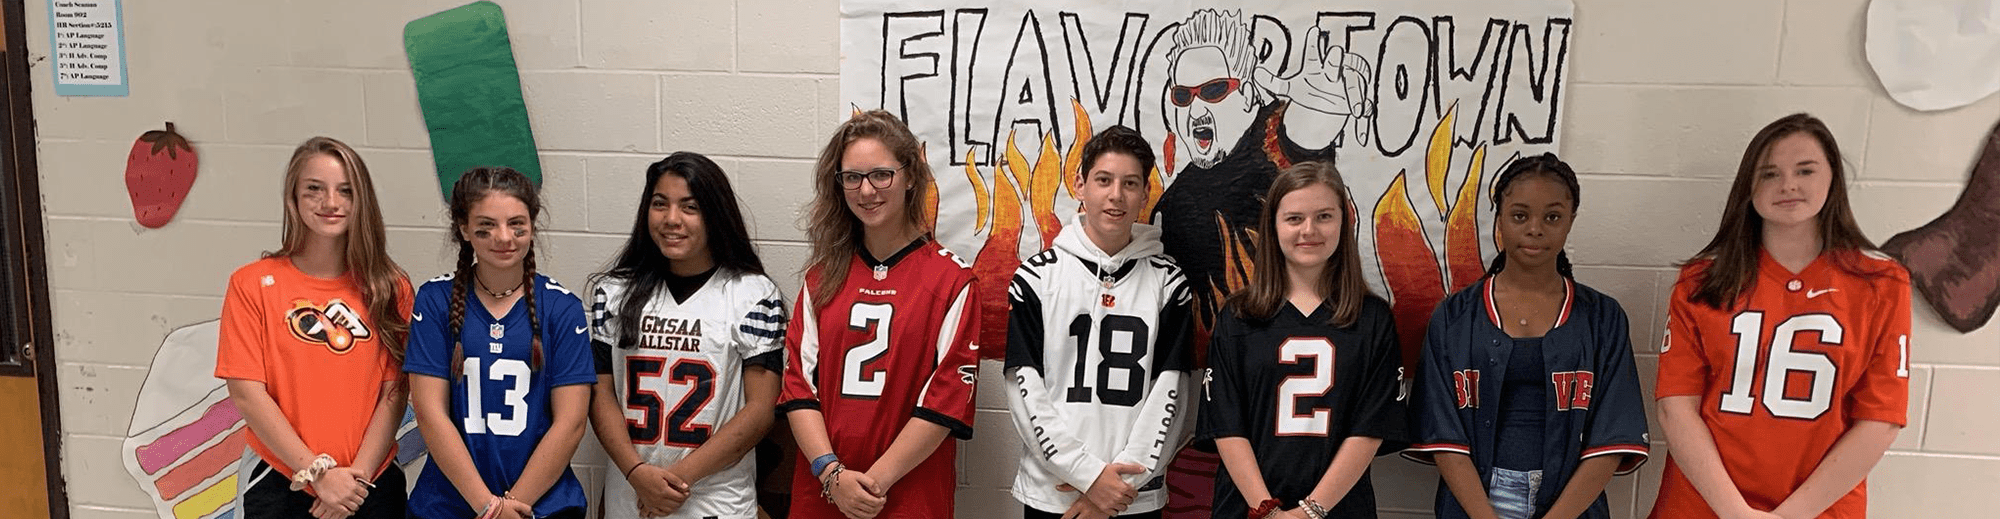 Students wearing athletics jerseys pose in front of a drawing of Guy Fieri and the word Flavortown